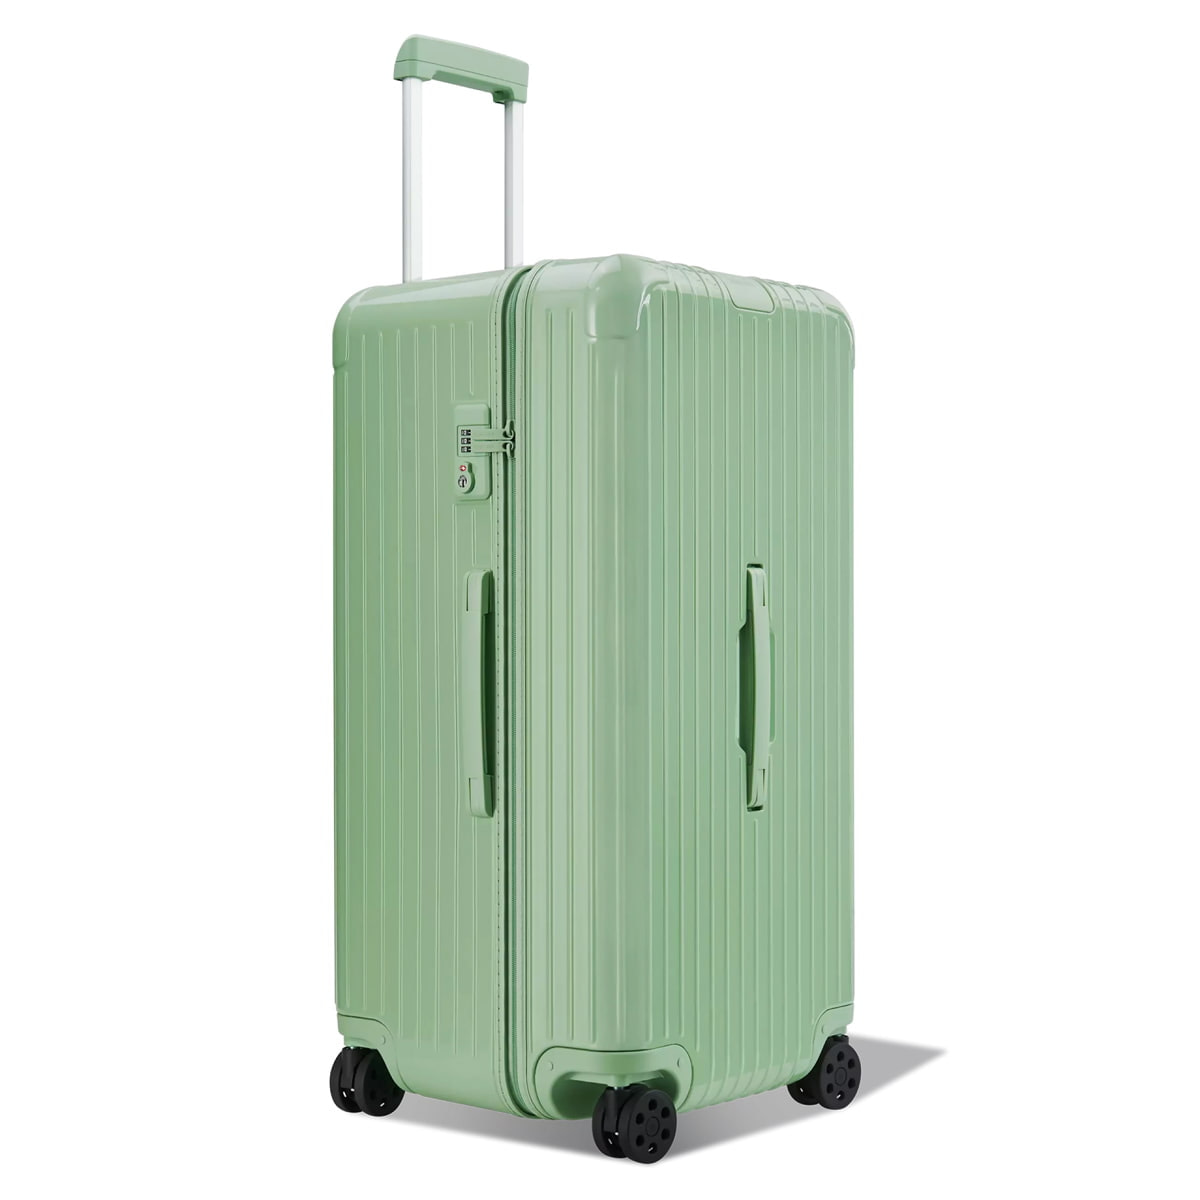 Polycarbonate Trunk Luggage